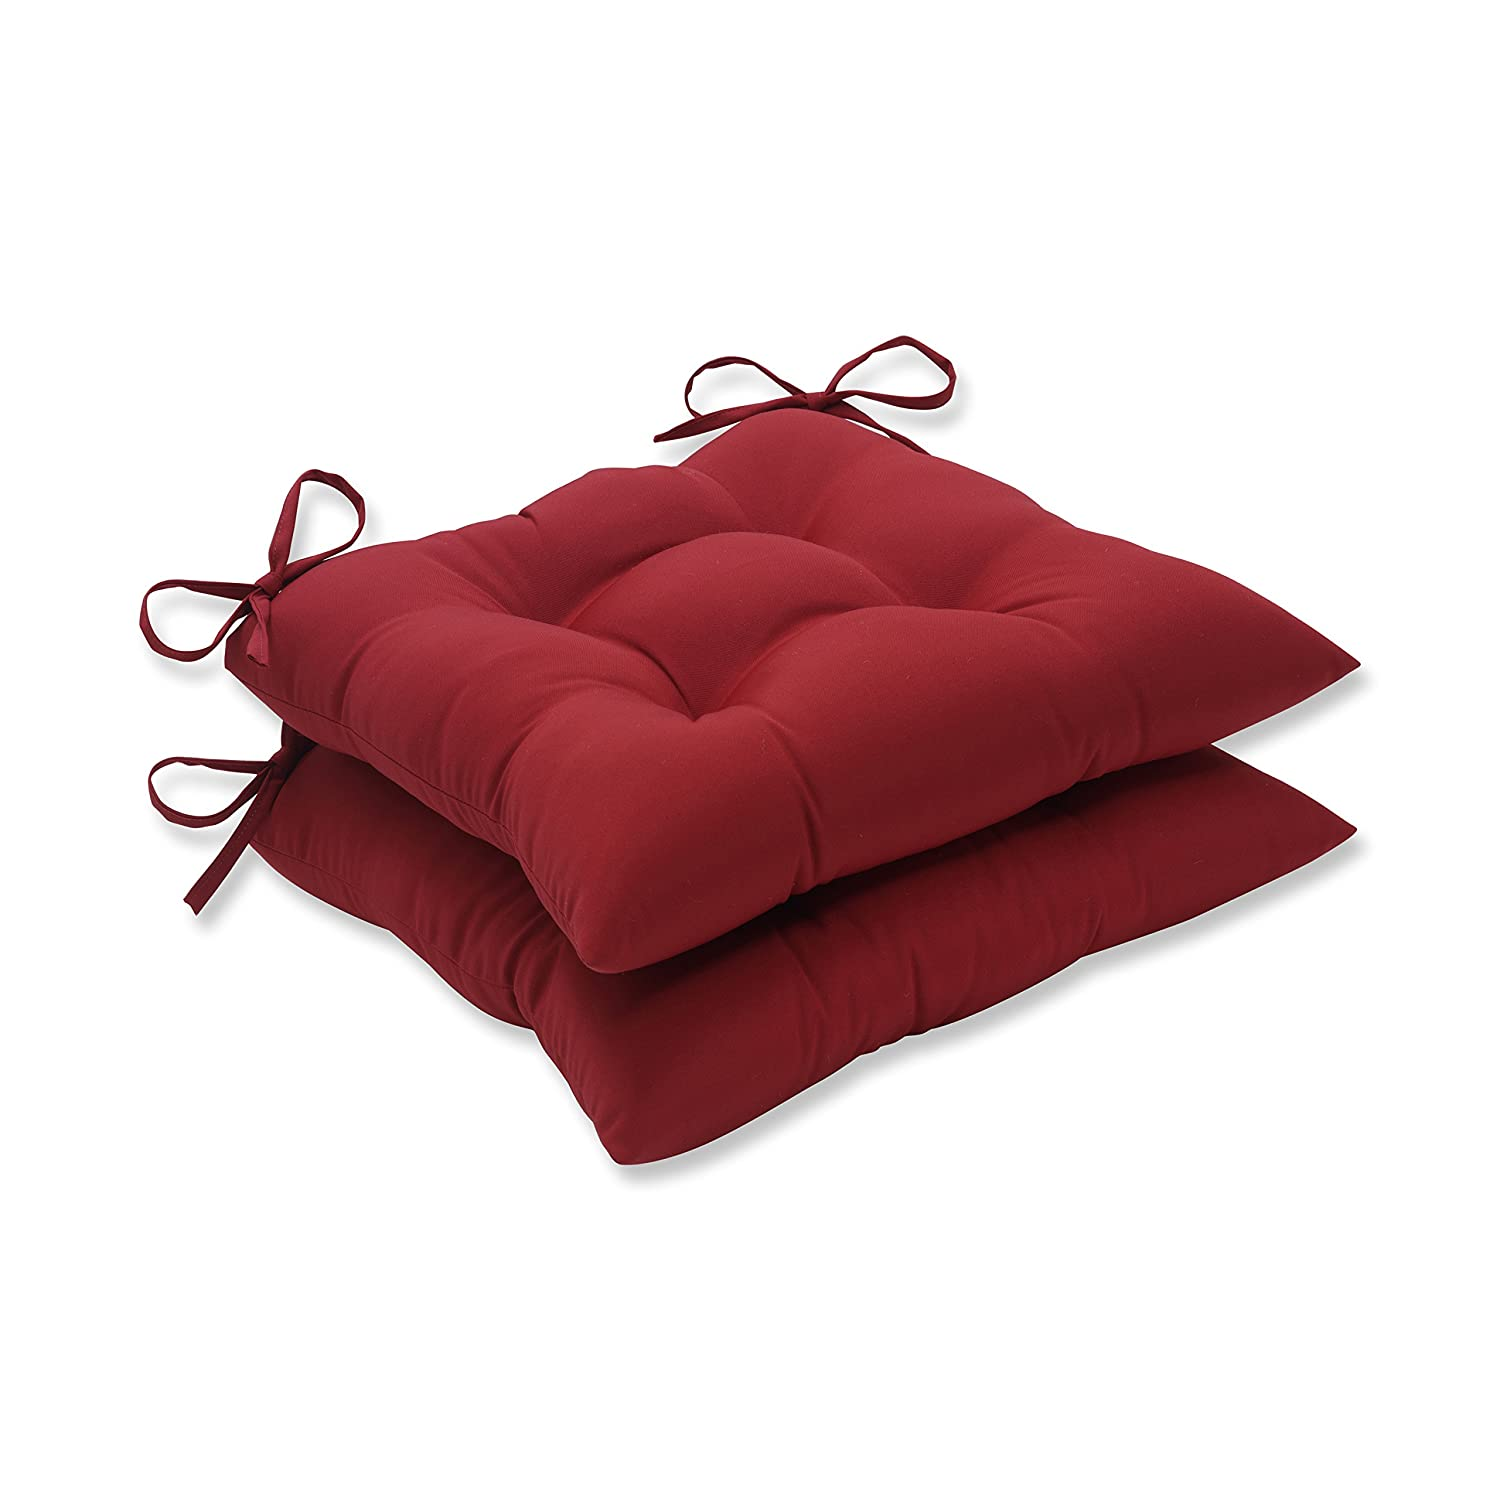 Pillow Perfect Indoor Outdoor Red Solid Tufted Seat Cushion, 2-Pack